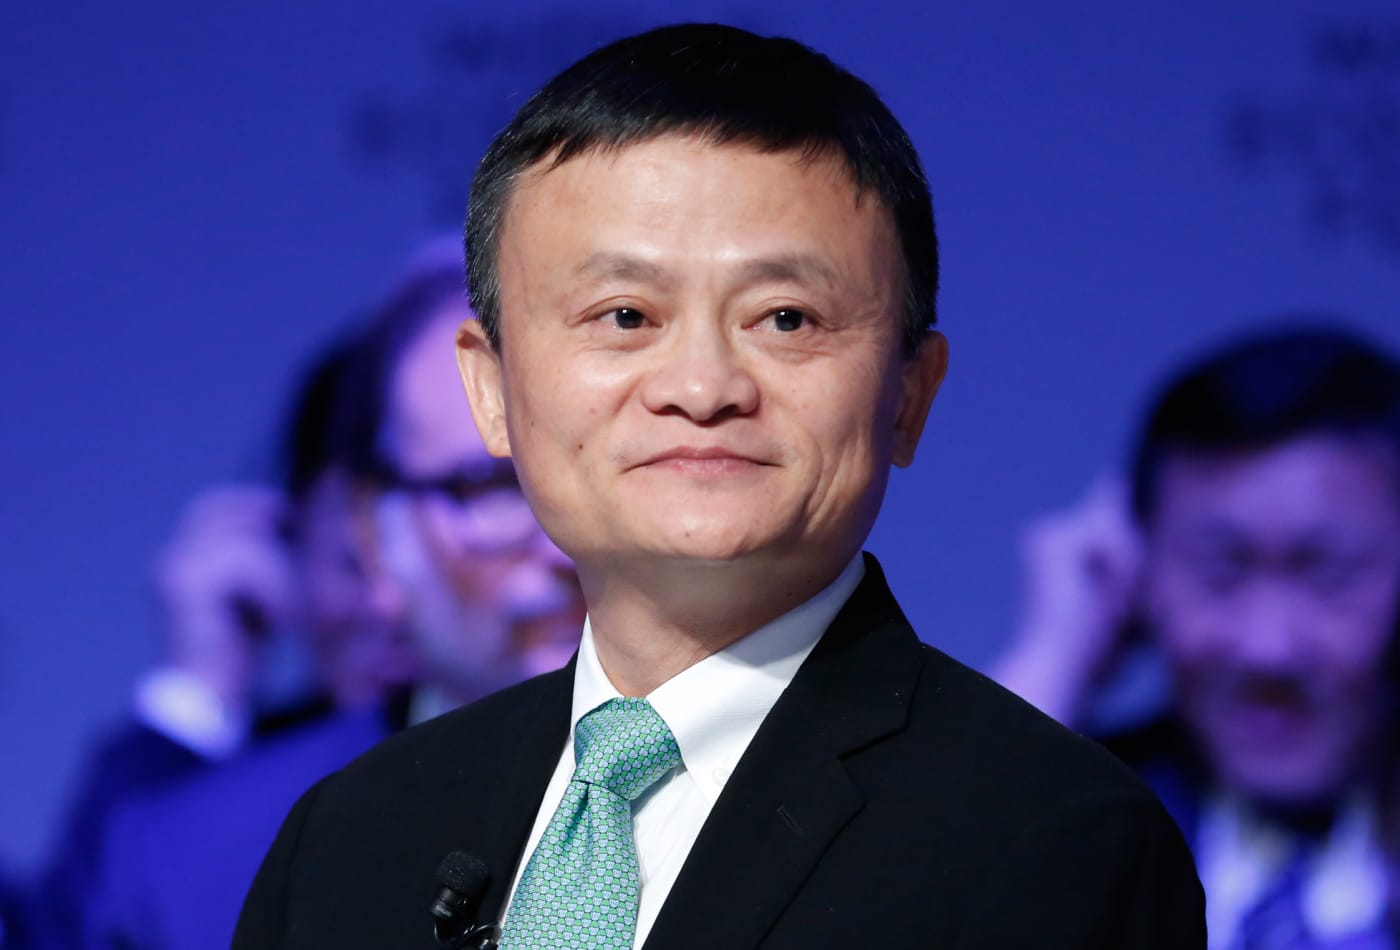 https://www.cnbc.com/2017/08/09/lesson-alibabas-jack-ma-learned-after-being-rejected-for-a-job-at-kfc.html